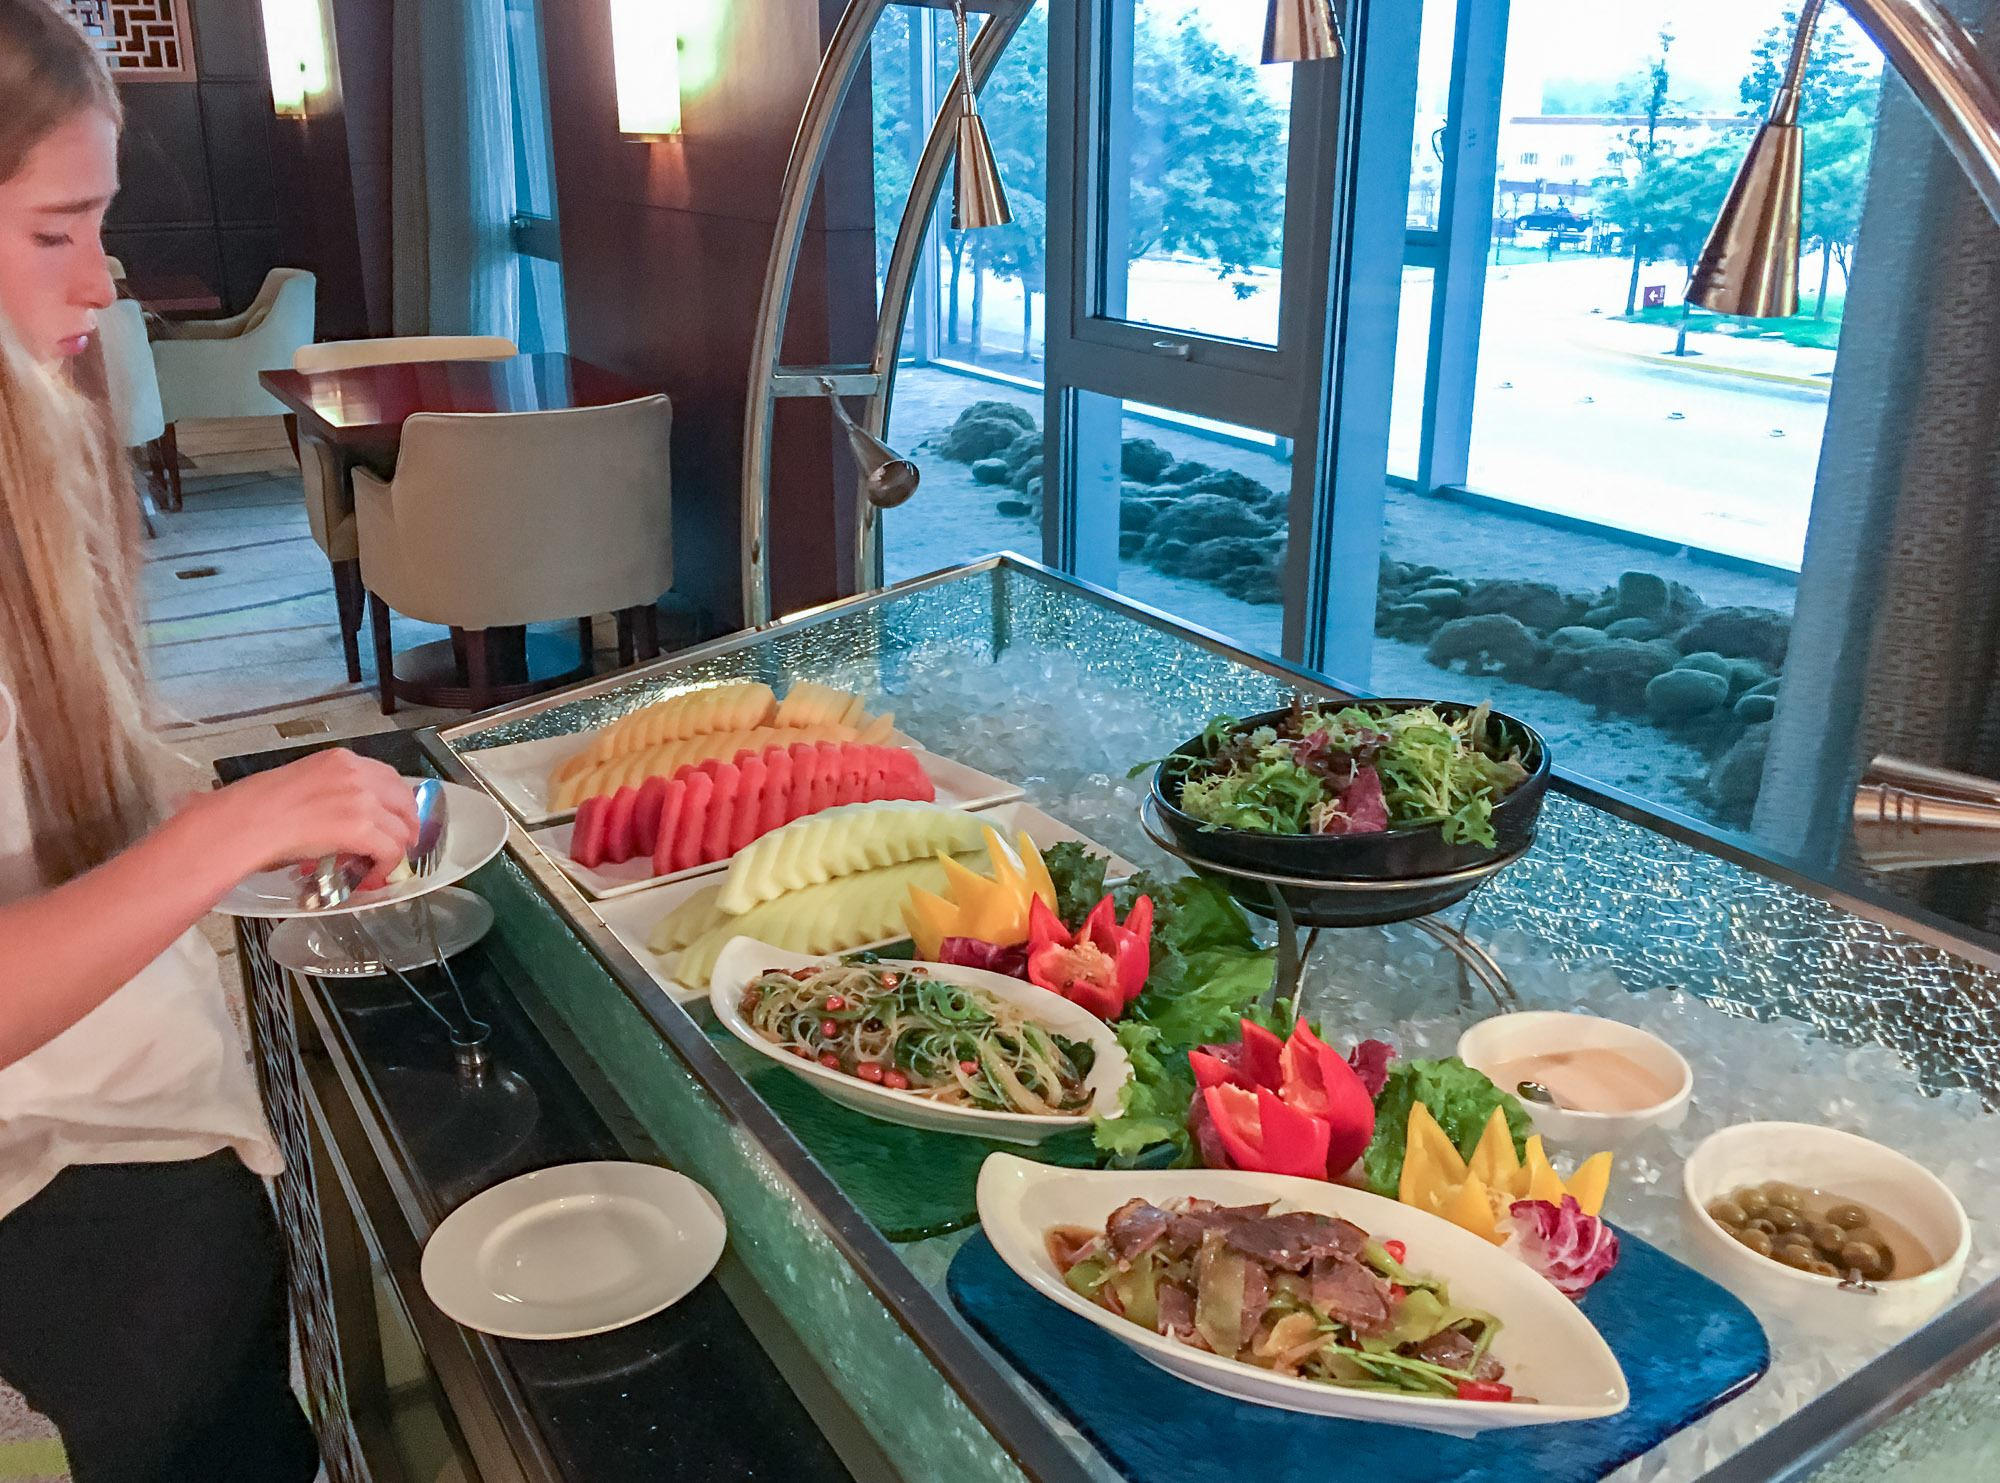 Salad offerings at the Hilton Beijing Capital Airport Club Lounge.